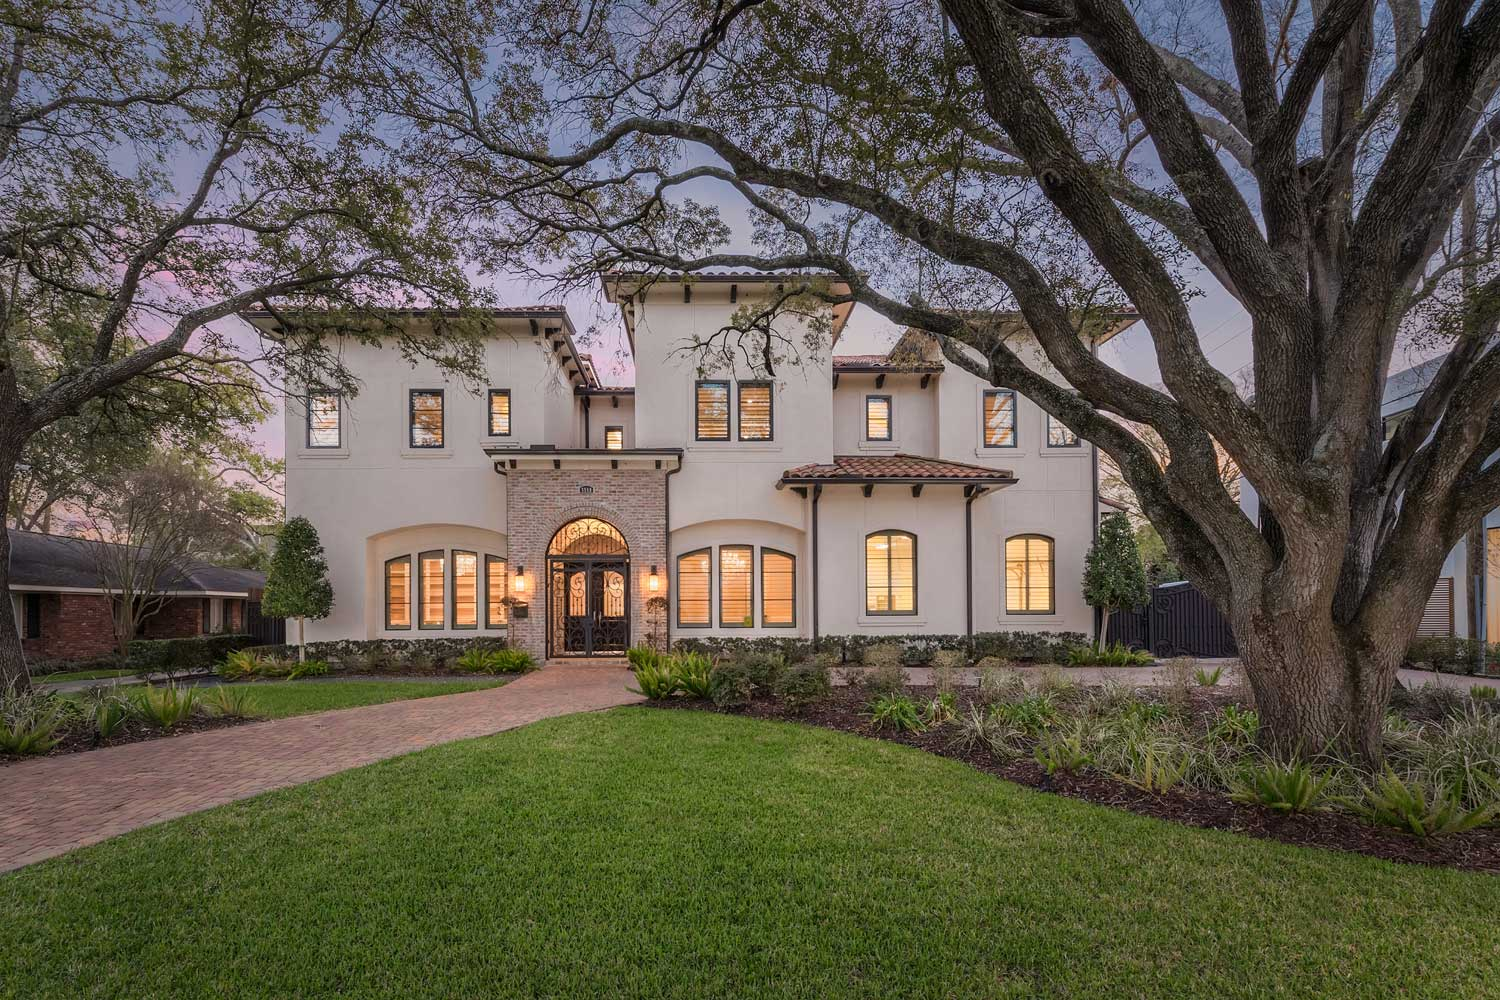 <b>Houston, Texas</b><br/><i>5 Bedrooms, 8,977 sq. ft.</i><br/>Mediterranean style home nestled among beautiful oak trees